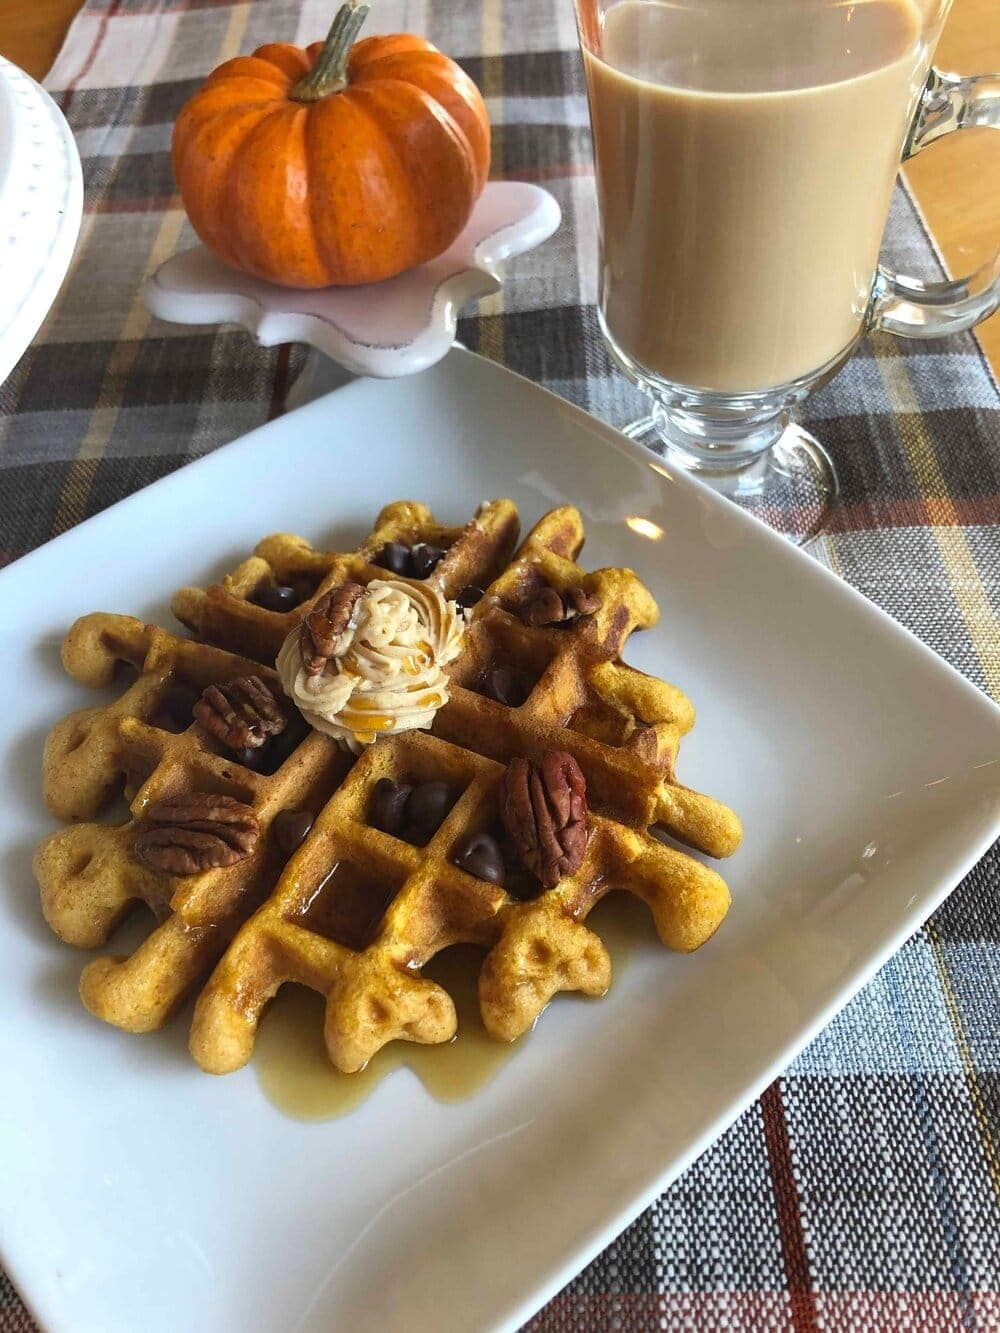 Missouri Girl Blog. Buttermilk pumpkin waffles. Pumpkin Buttermilk Waffles with maple cinnamon butter. So amazing! Imagine a spiced pumpkin waffles with melty maple butter, chocolate, and pecans on top. So good and makes the perfect addition to any Holiday, Fall, or Winter breakfast, #pumpkinbuttermilkwaffles #waffles #holidaybreakfast #breakfast #Christmasbreakfast